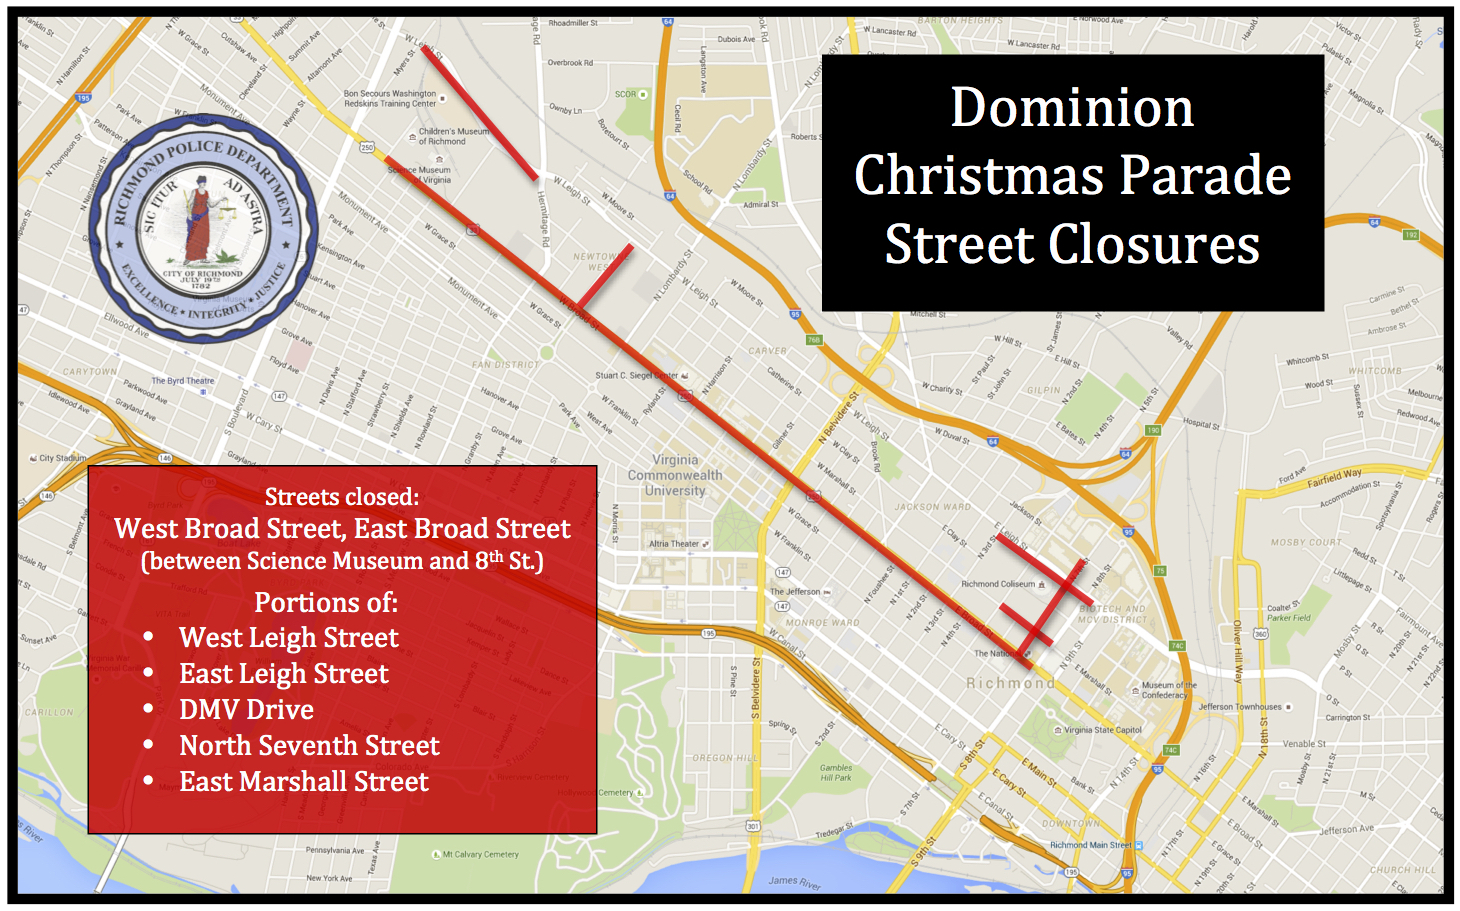 Richmond Traffic Map.Traffic Advisories In Richmond Va 2018 Dominion Energy Christmas